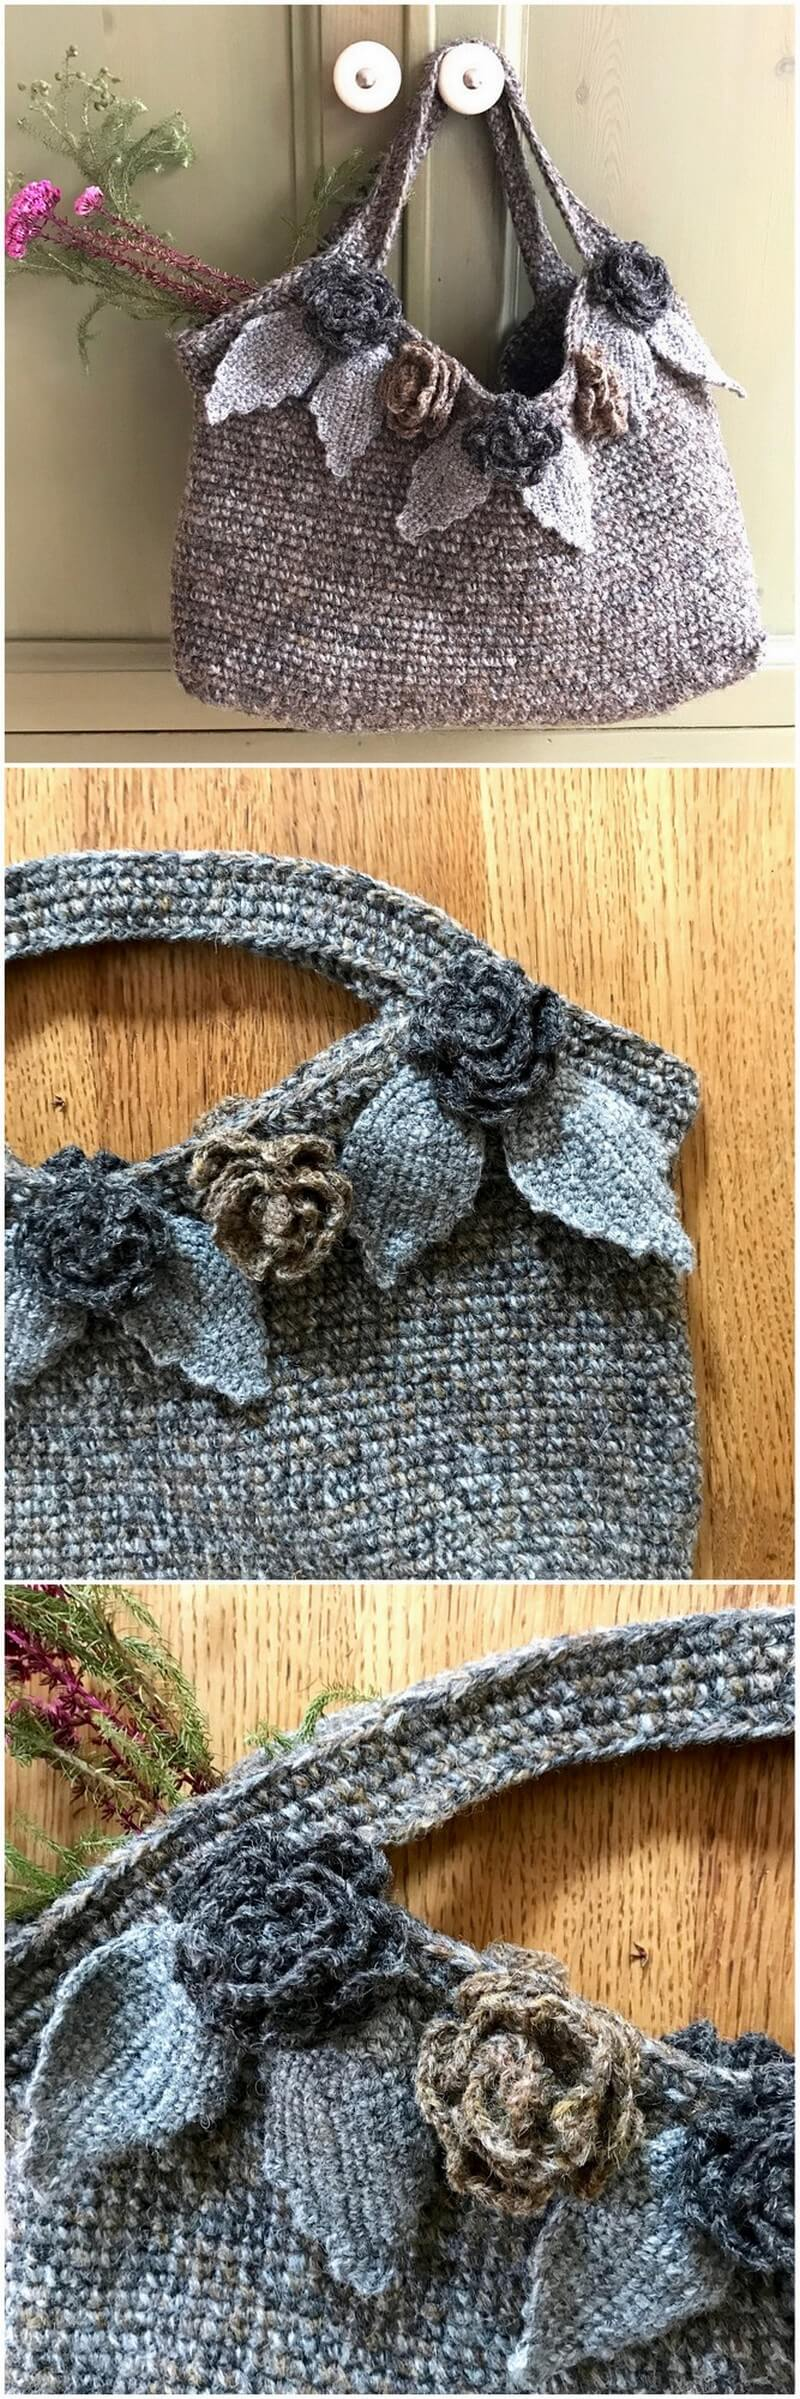 Crochet Bag Pattern (7)